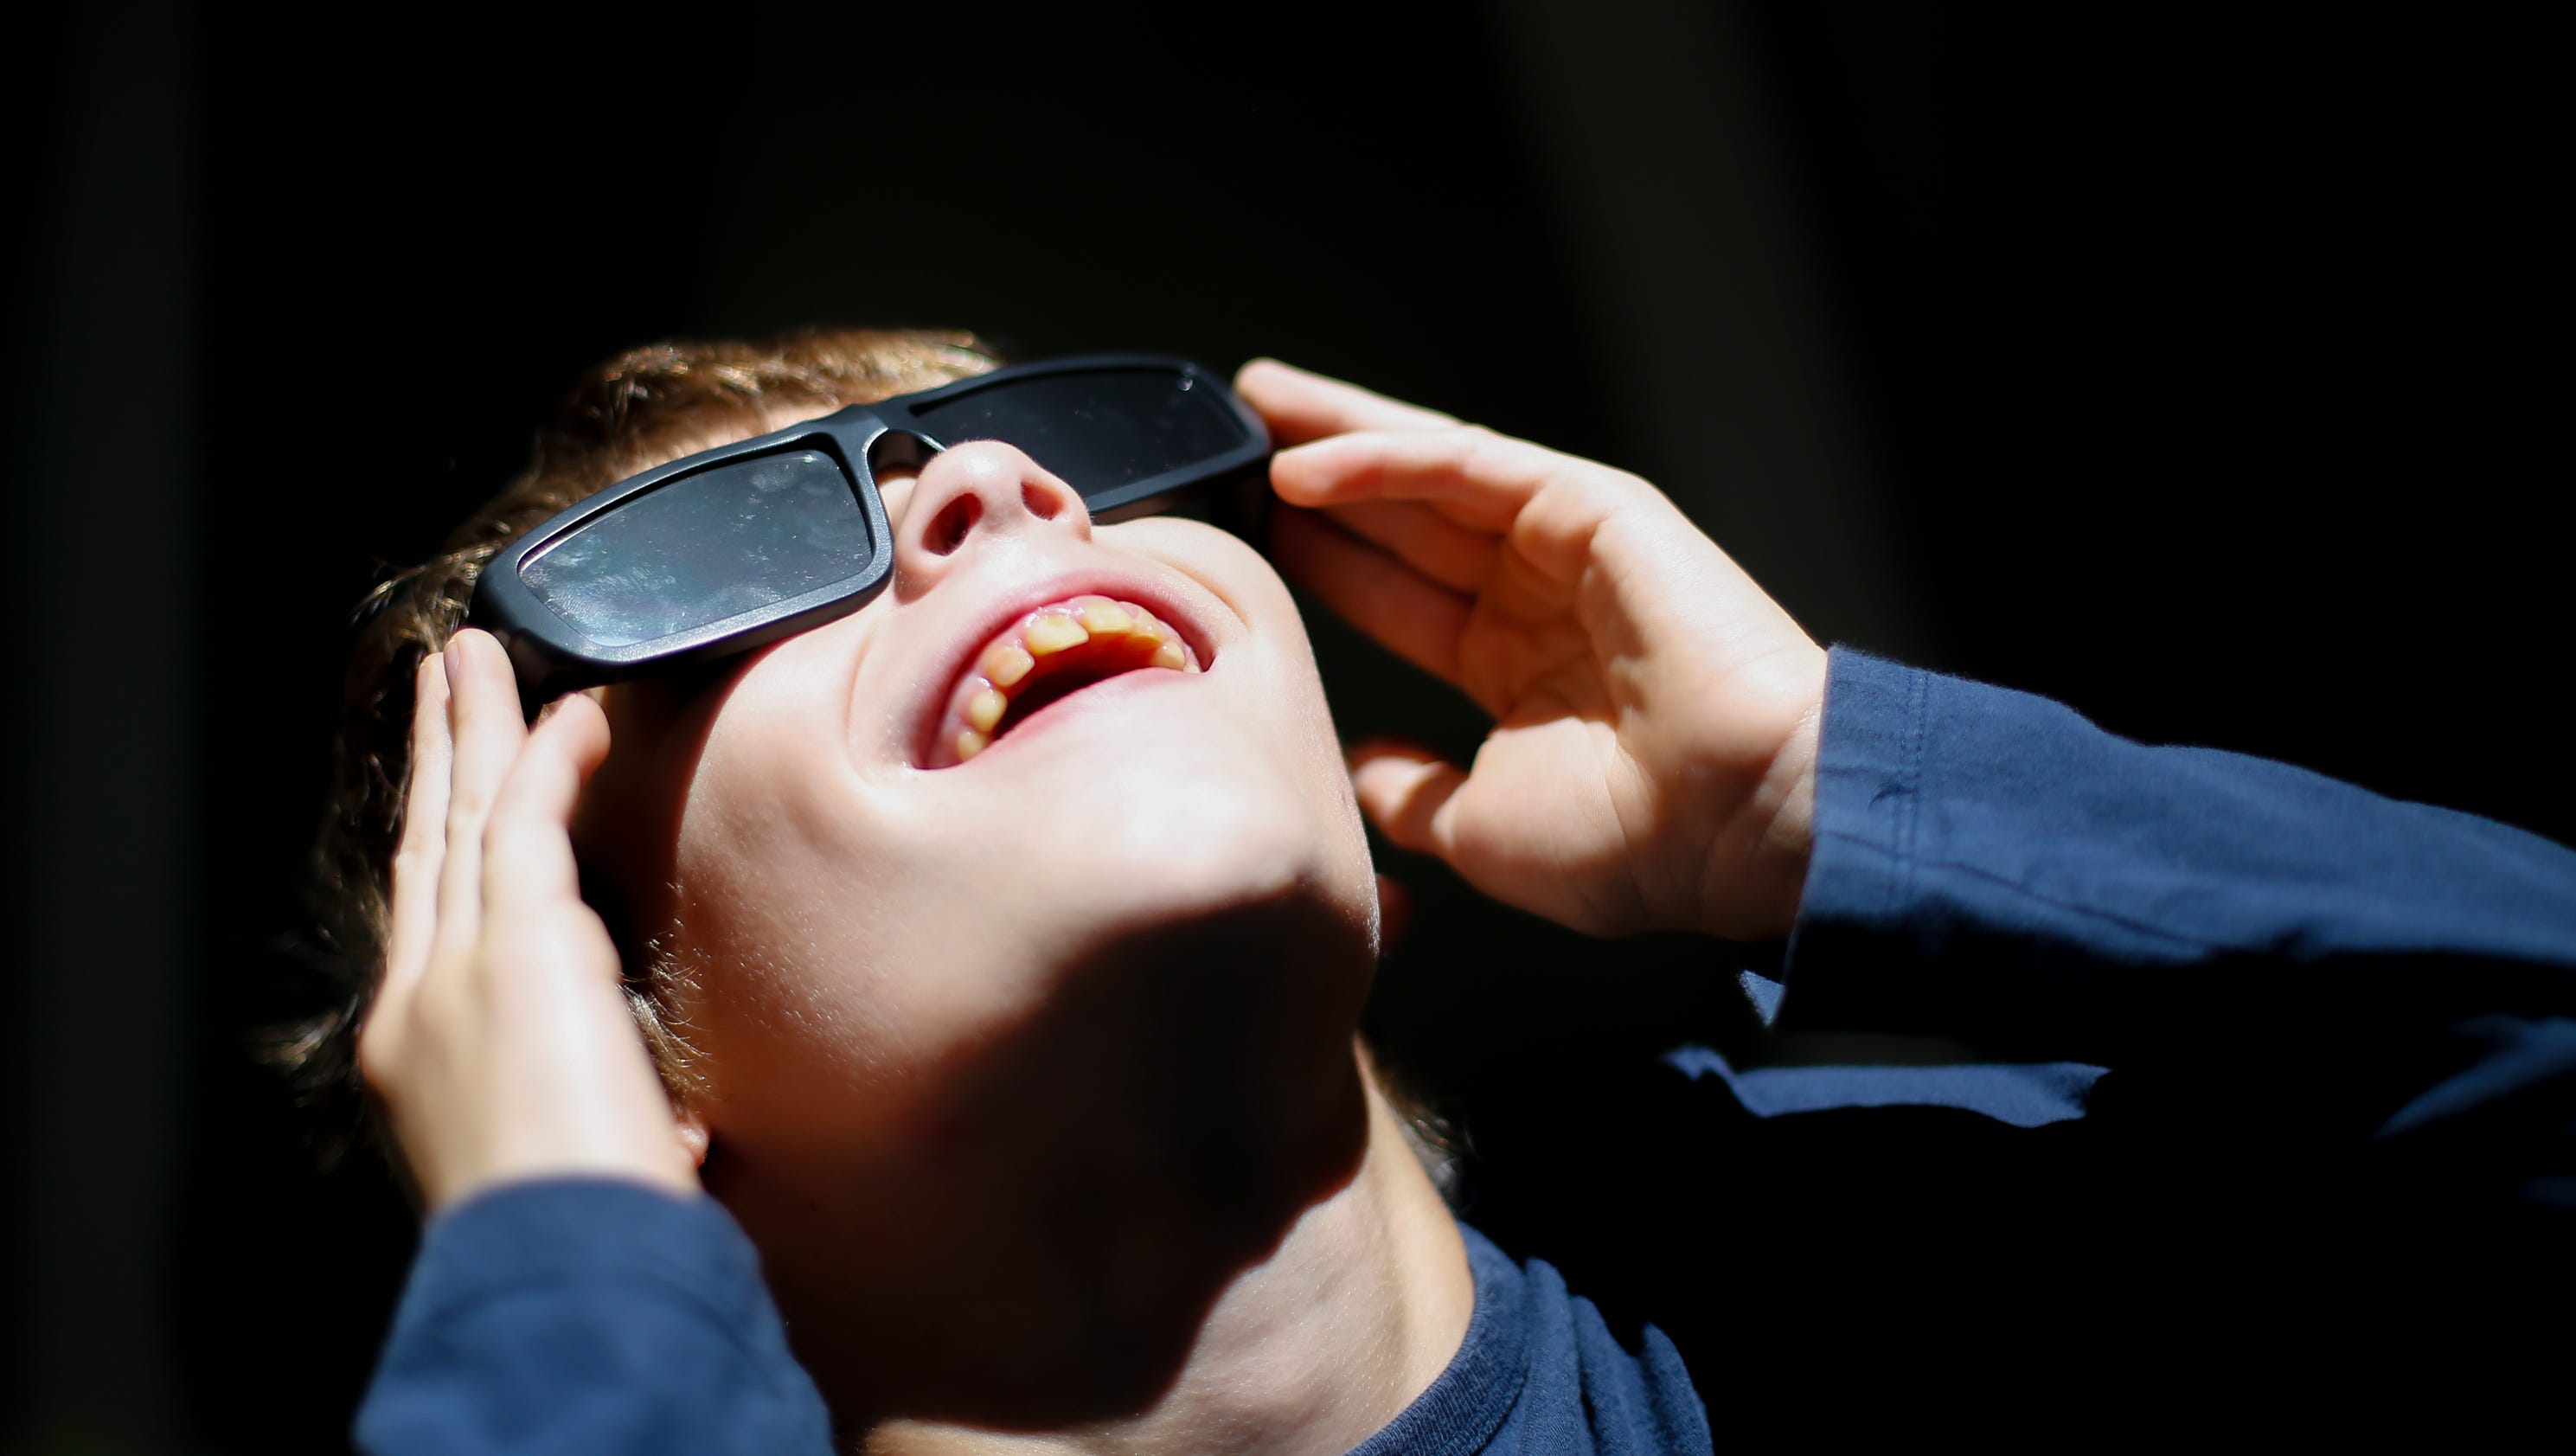 how to know if my solar eclipse glasses are safe